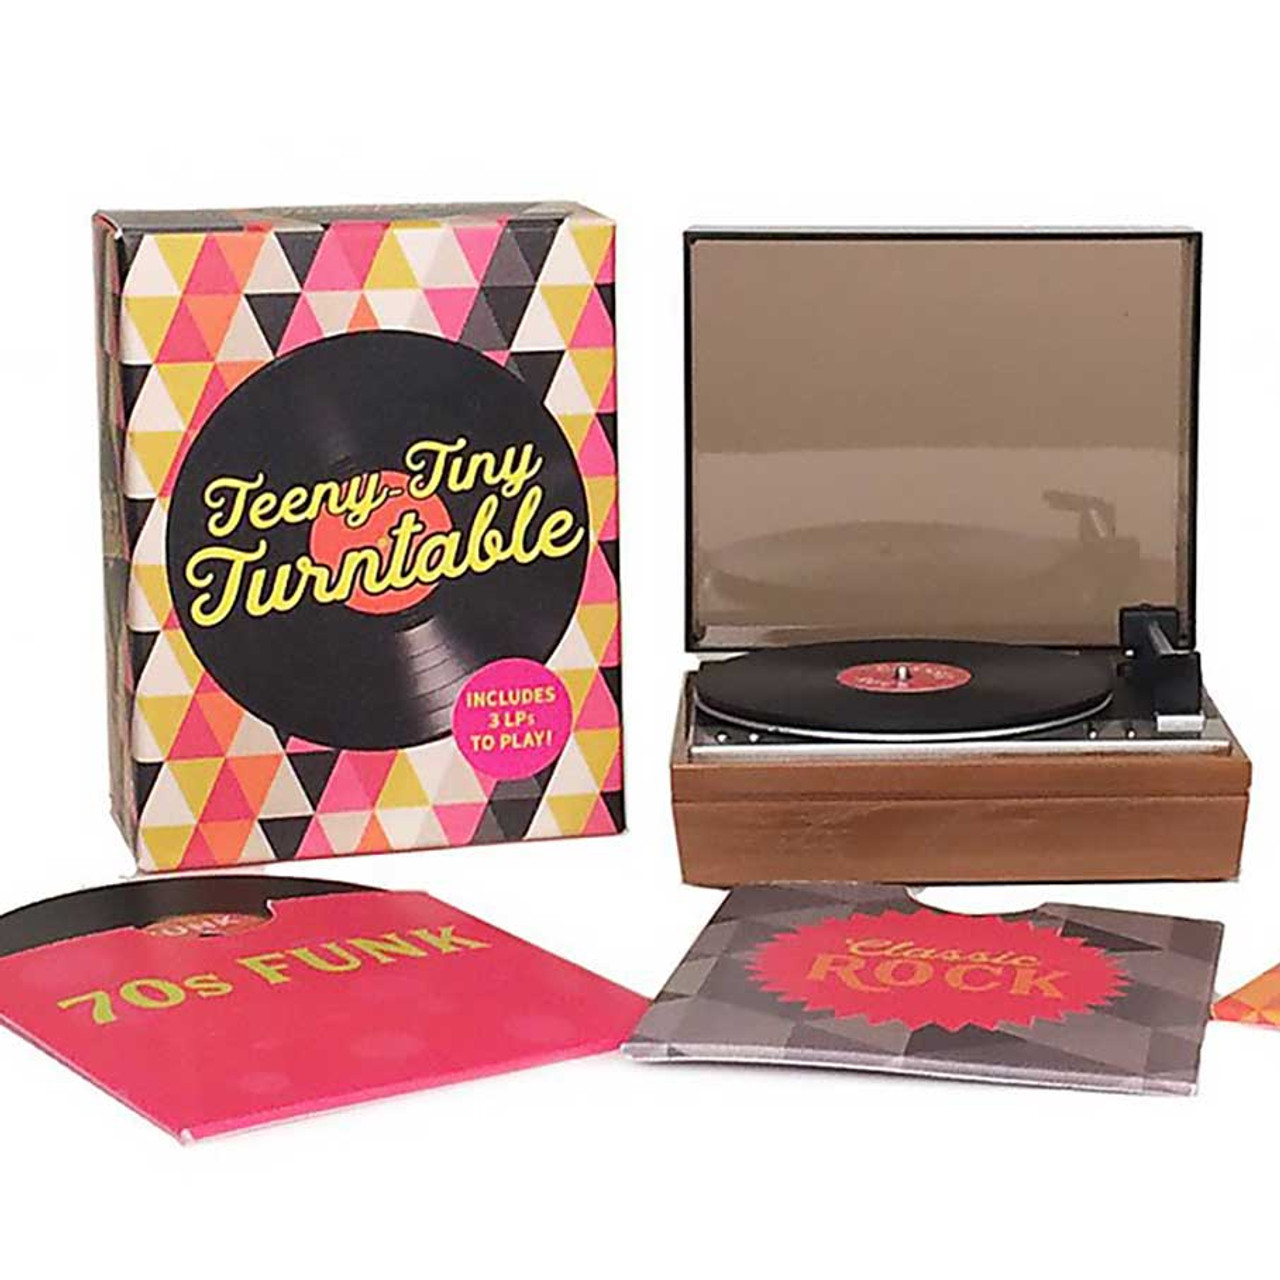 Teeny-Tiny Record Turntable | Fun Music Toys at Perpetual Kid